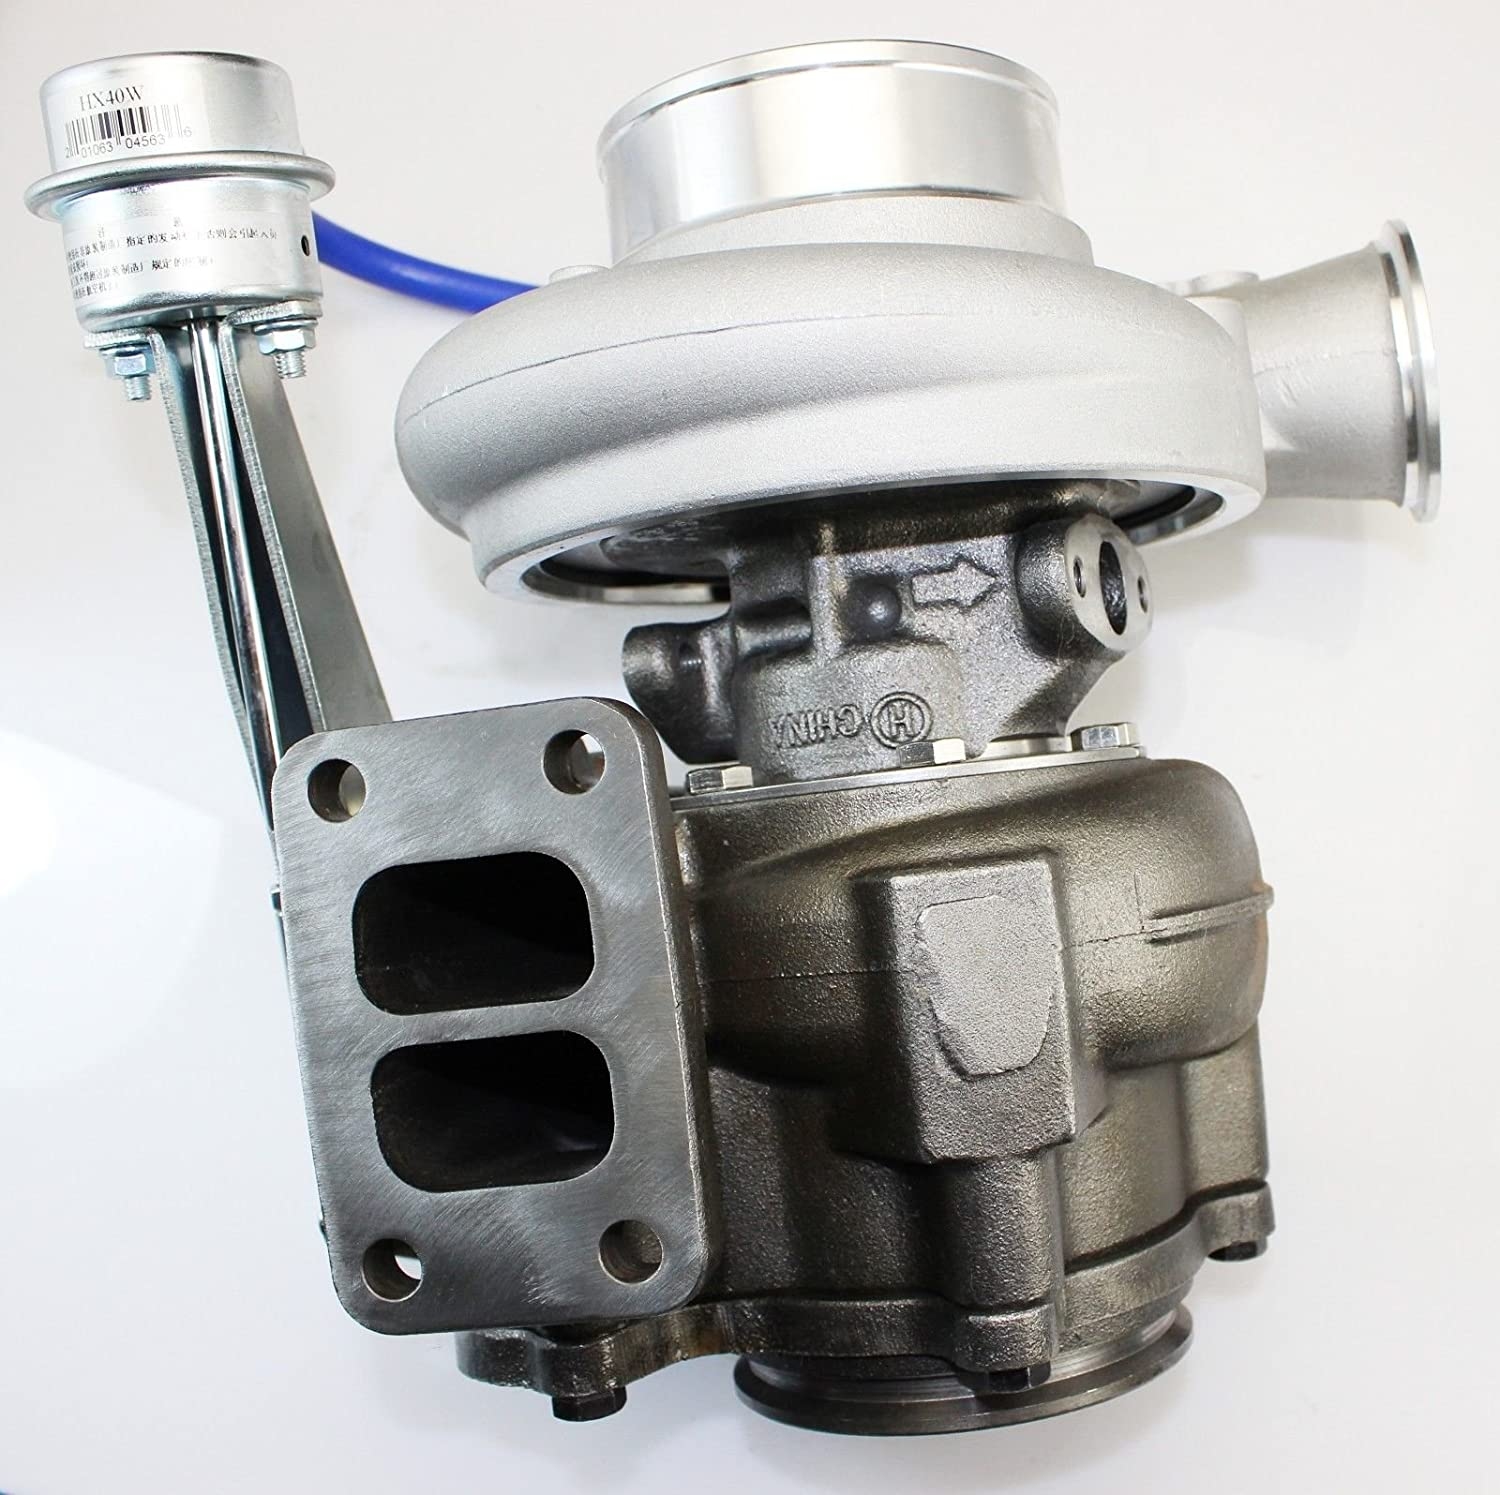 HX40W 4036378 4055291 4036810 Diesel Turbo Charger For Dodge ISC 8.3L